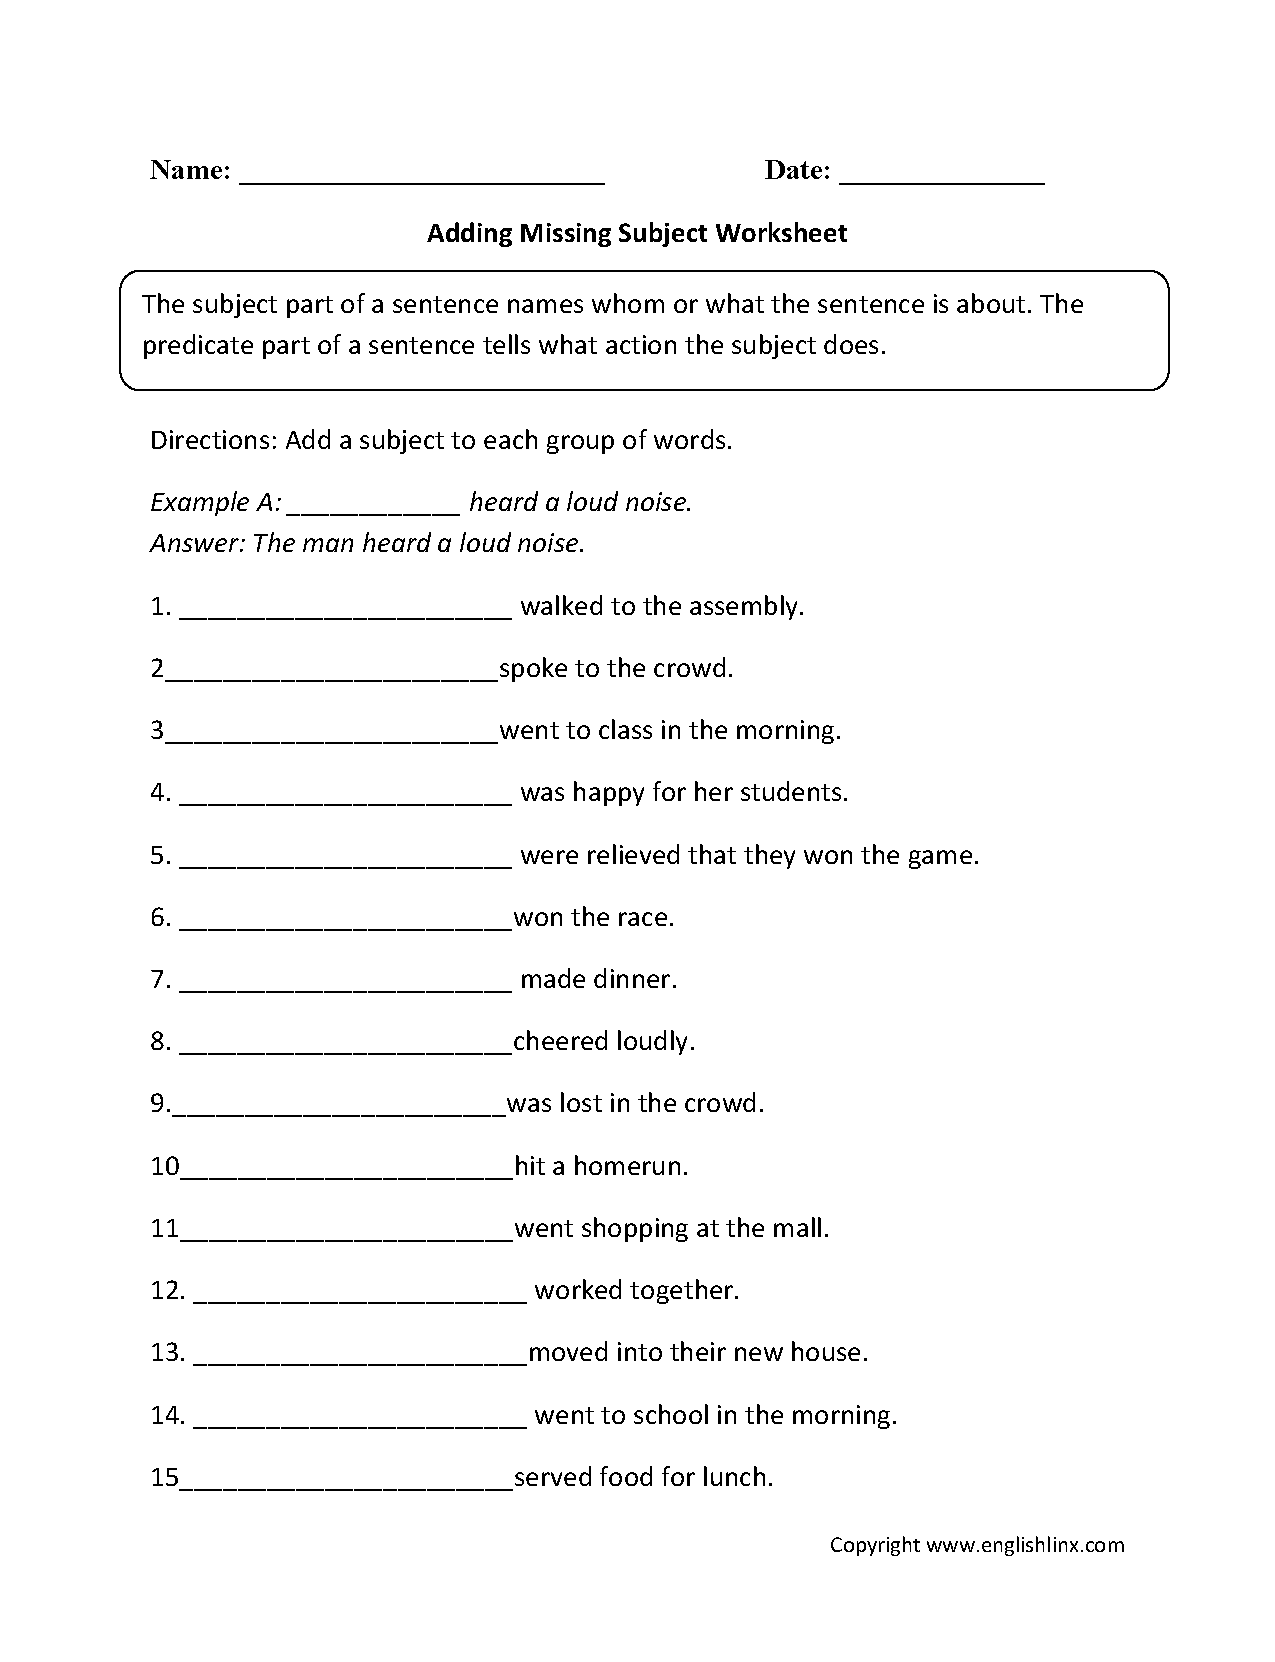 Adding Missing Subjects Worksheet   Subject and predicate worksheets [ 1662 x 1275 Pixel ]